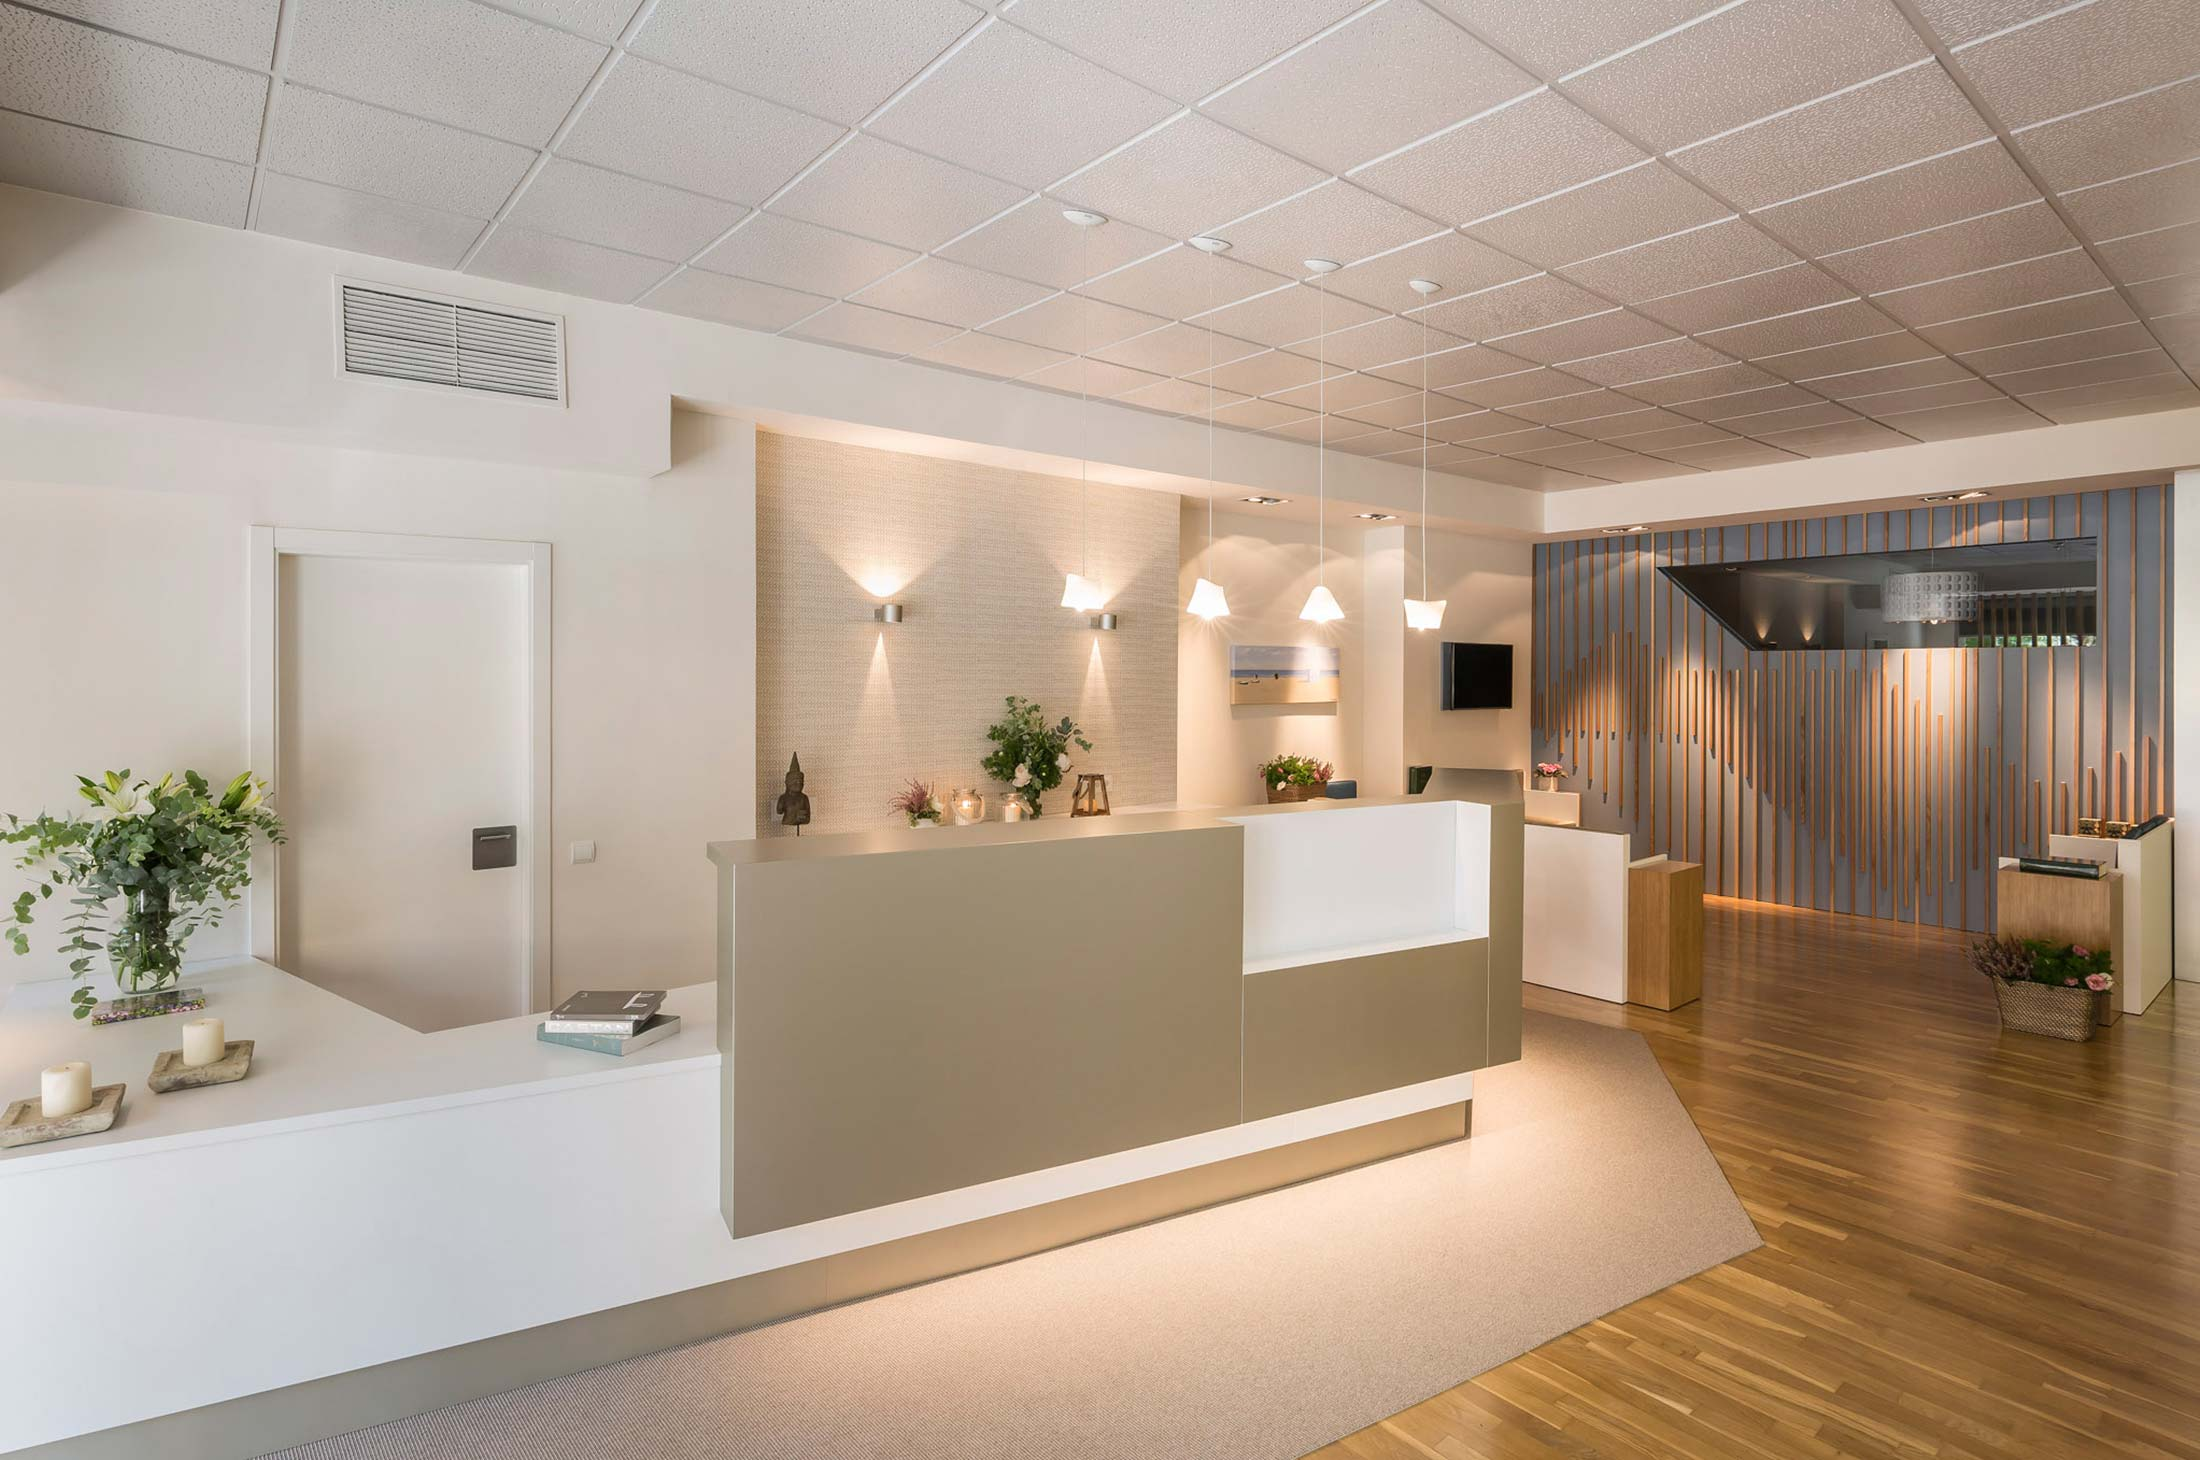 interiorismo clinica dental